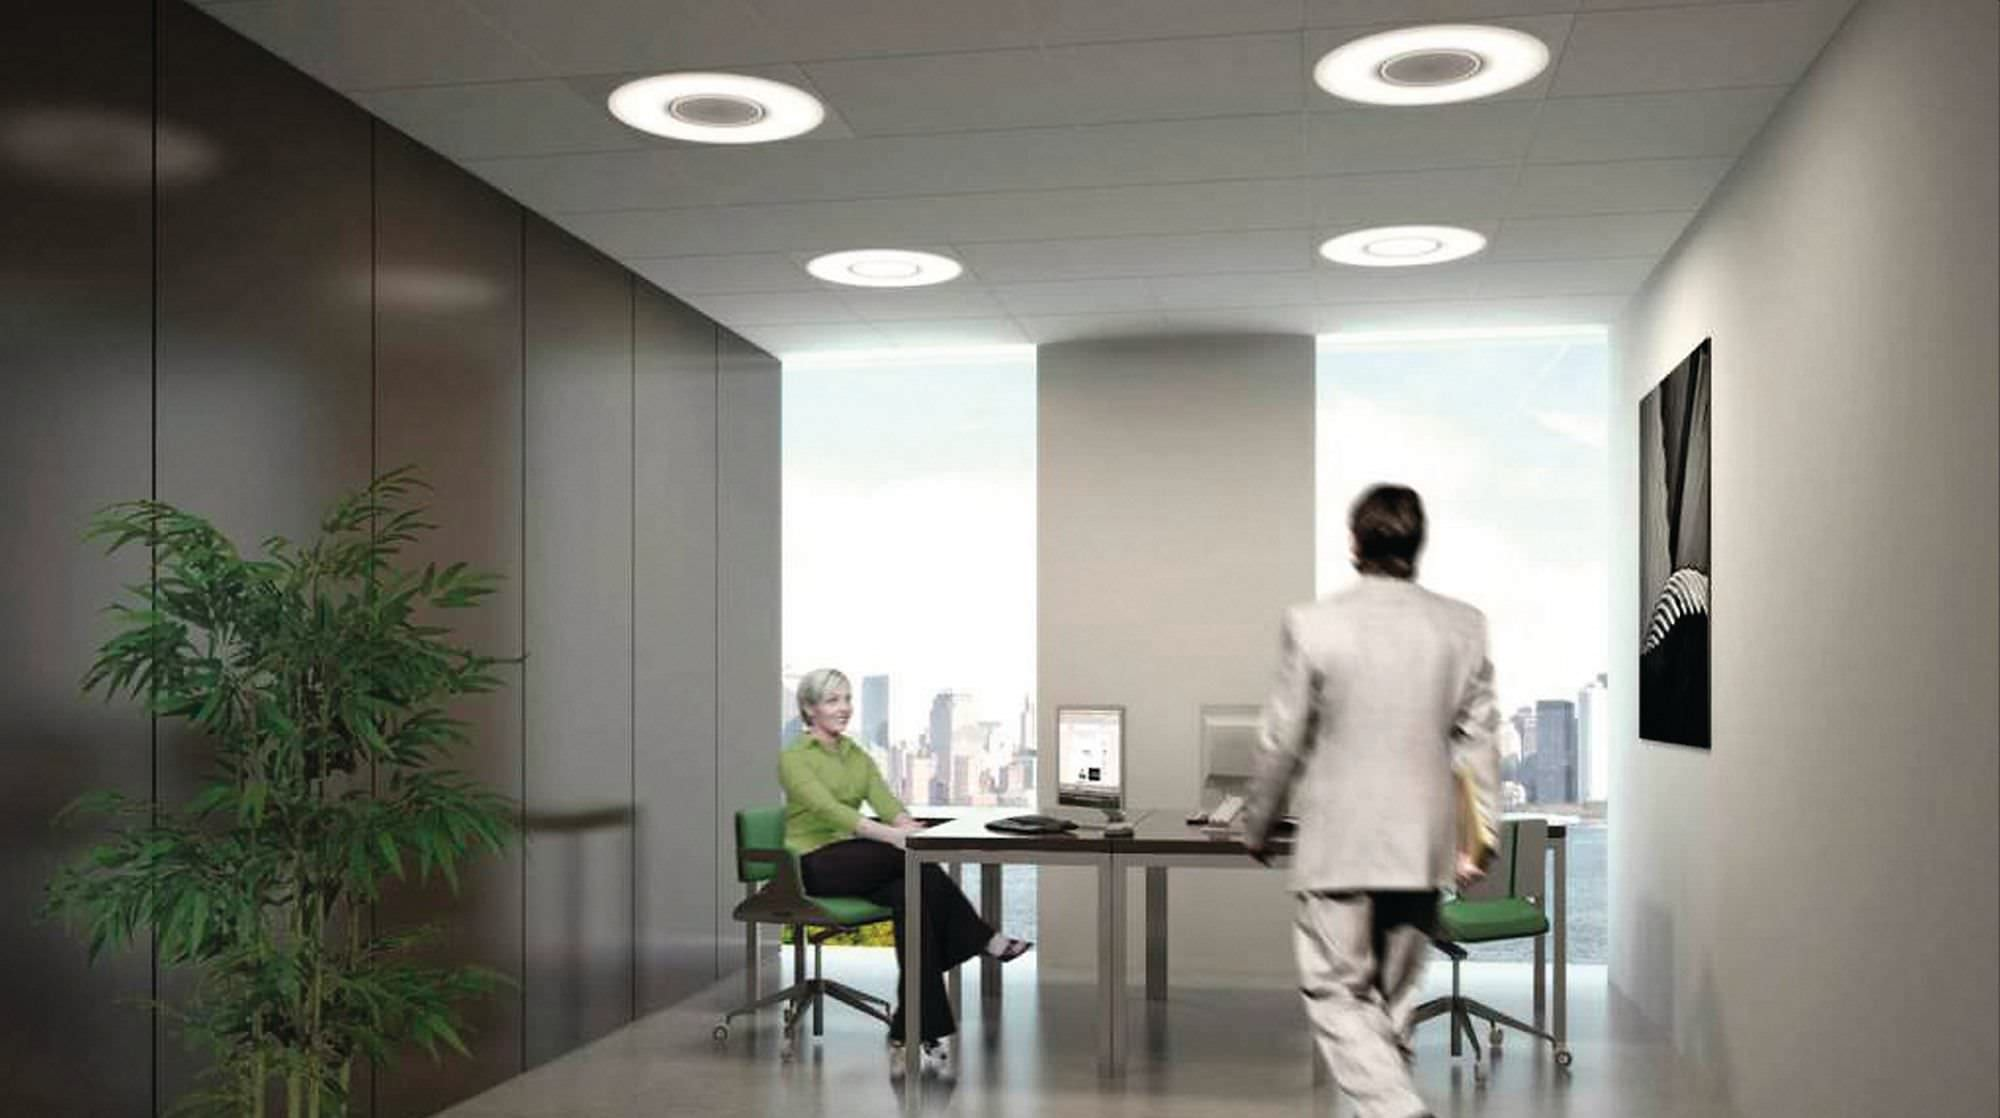 Interior Juno Lighting Cool Ceiling Led Rounded Recessed